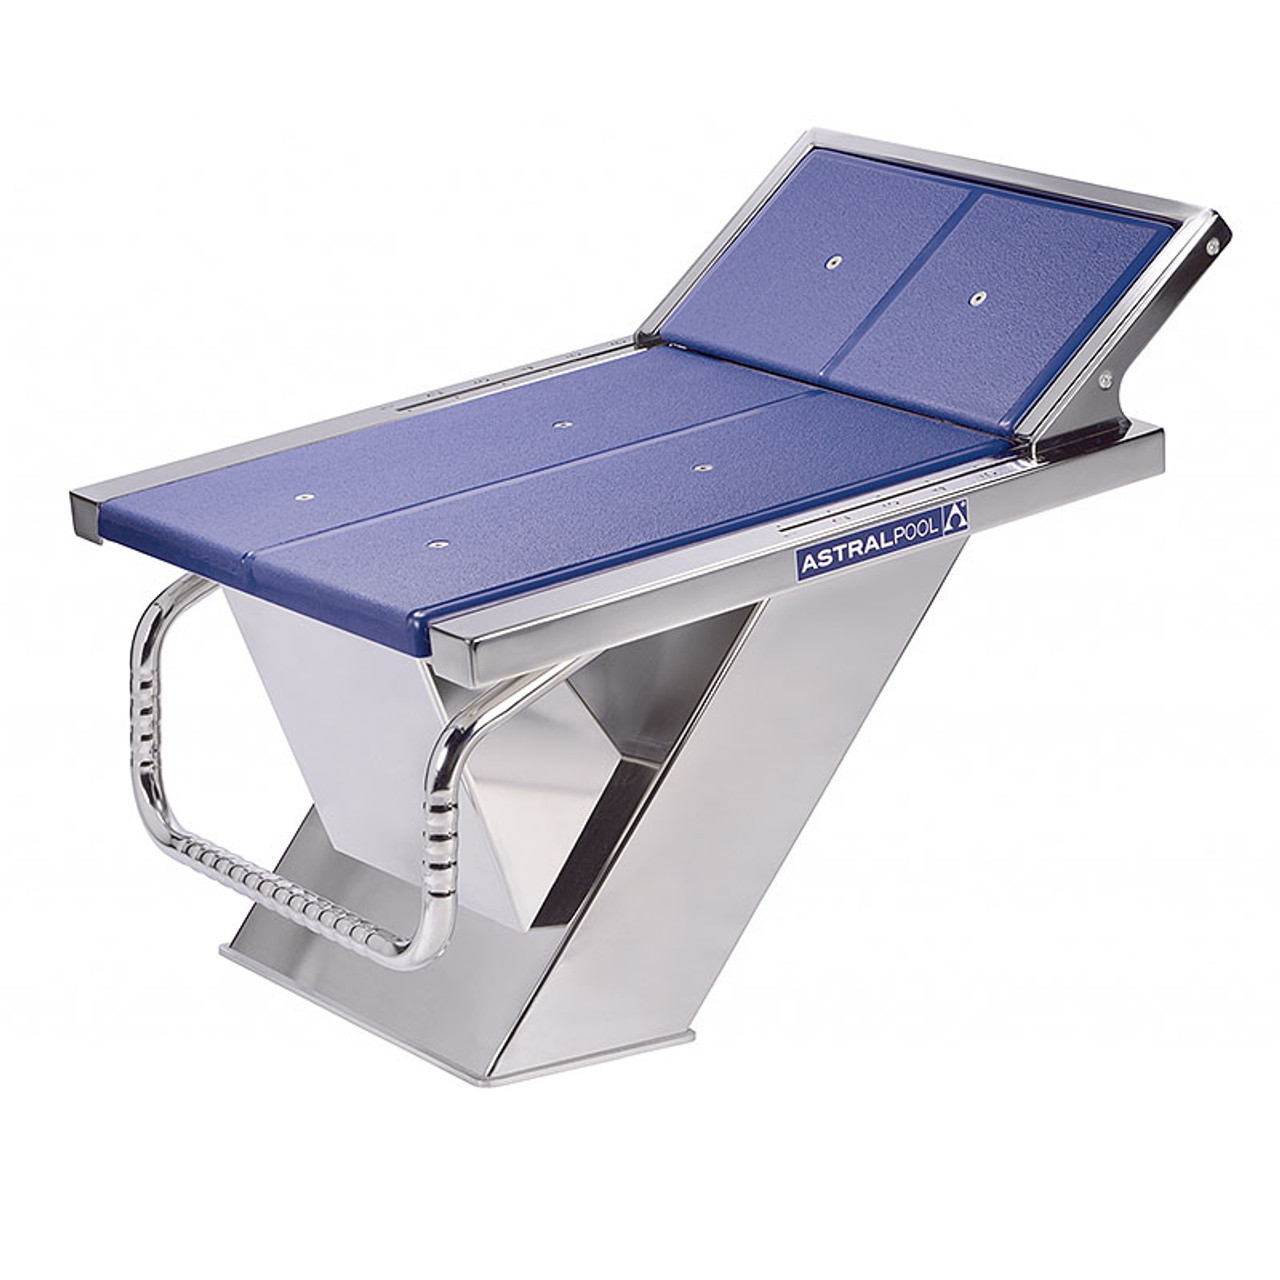 Astral BCN FINA Compliant Competition Swimming Pool Starting Block